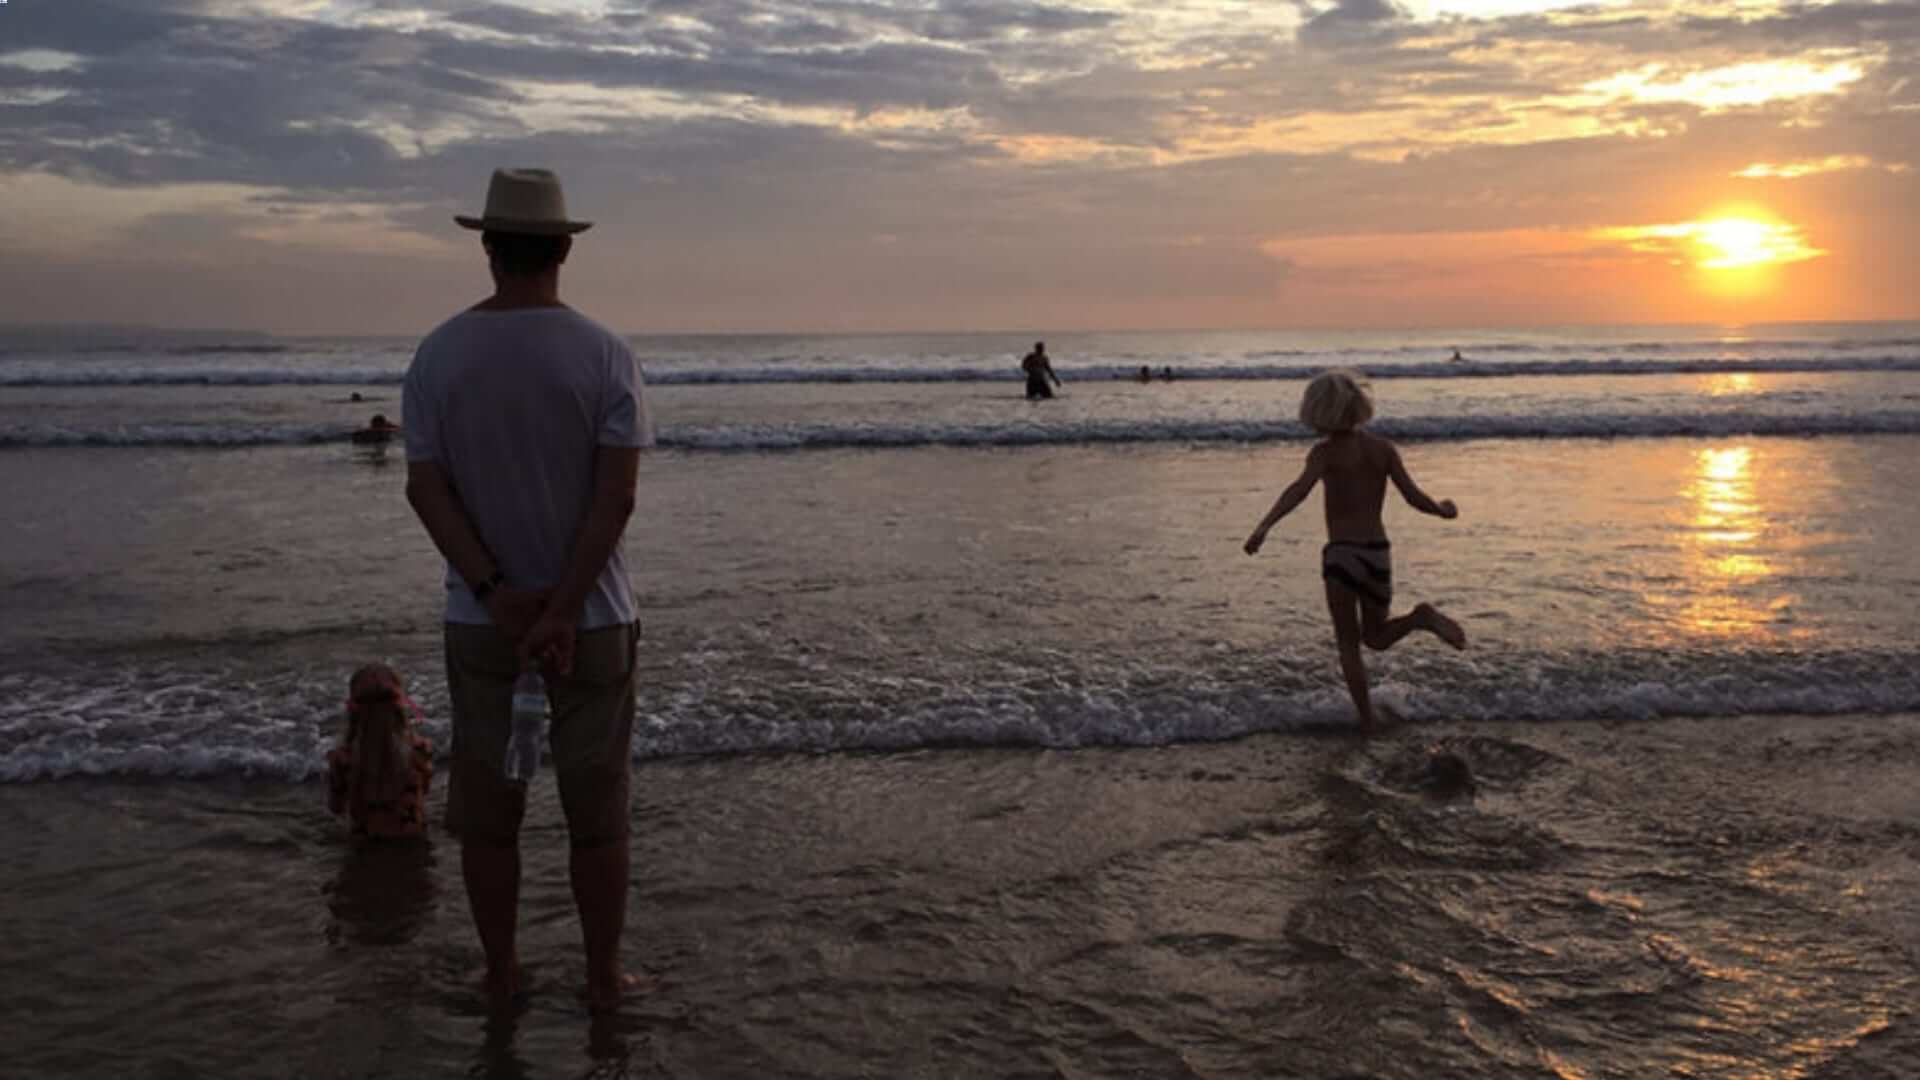 A family is standing in the water in front of the ocean looking at the sunset in Bali.